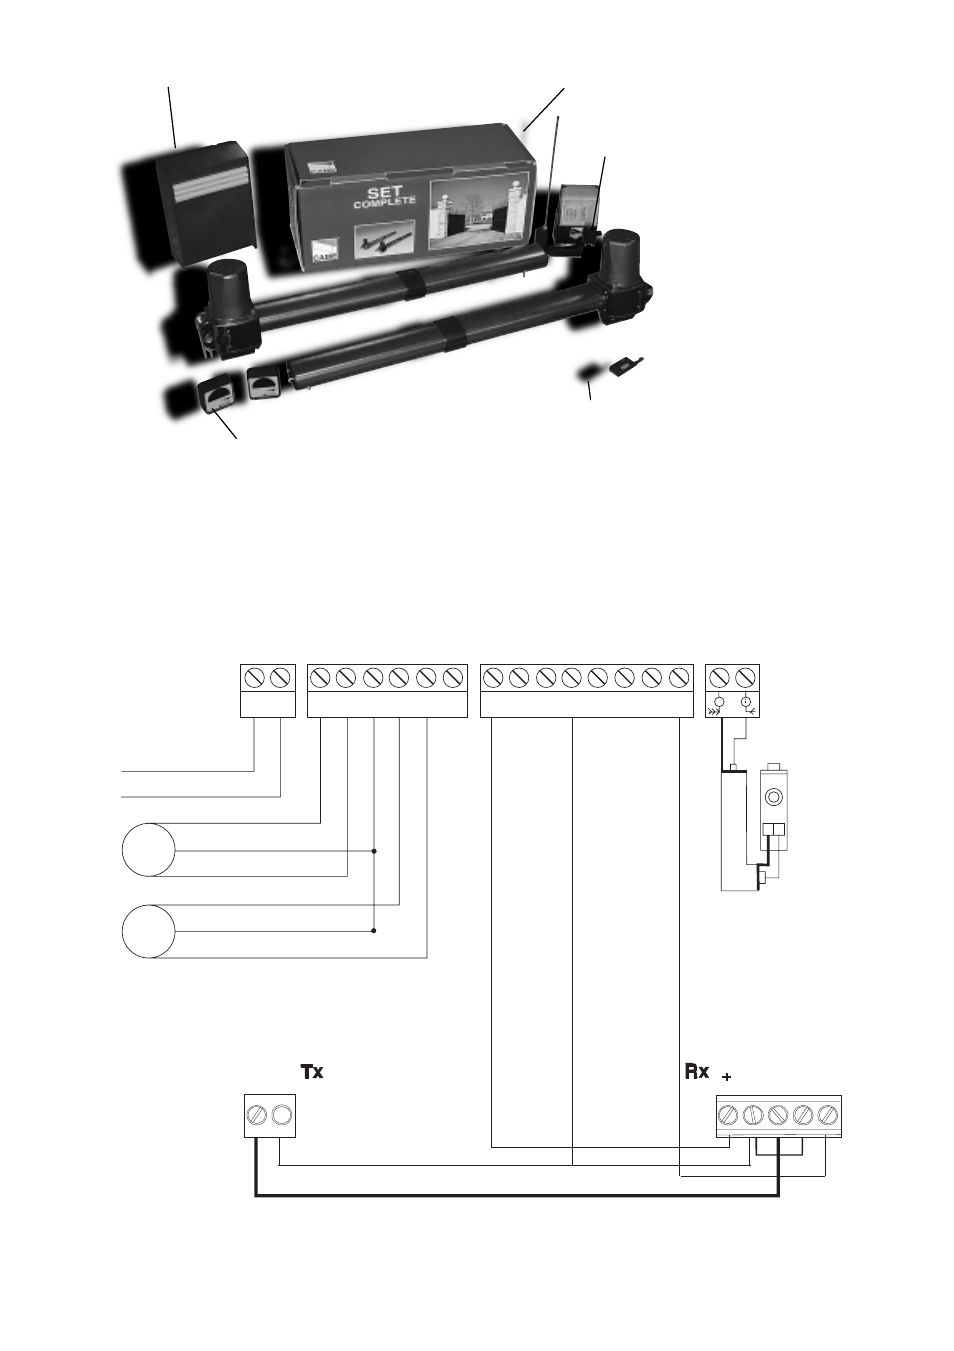 Came Za4 Wiring Diagram